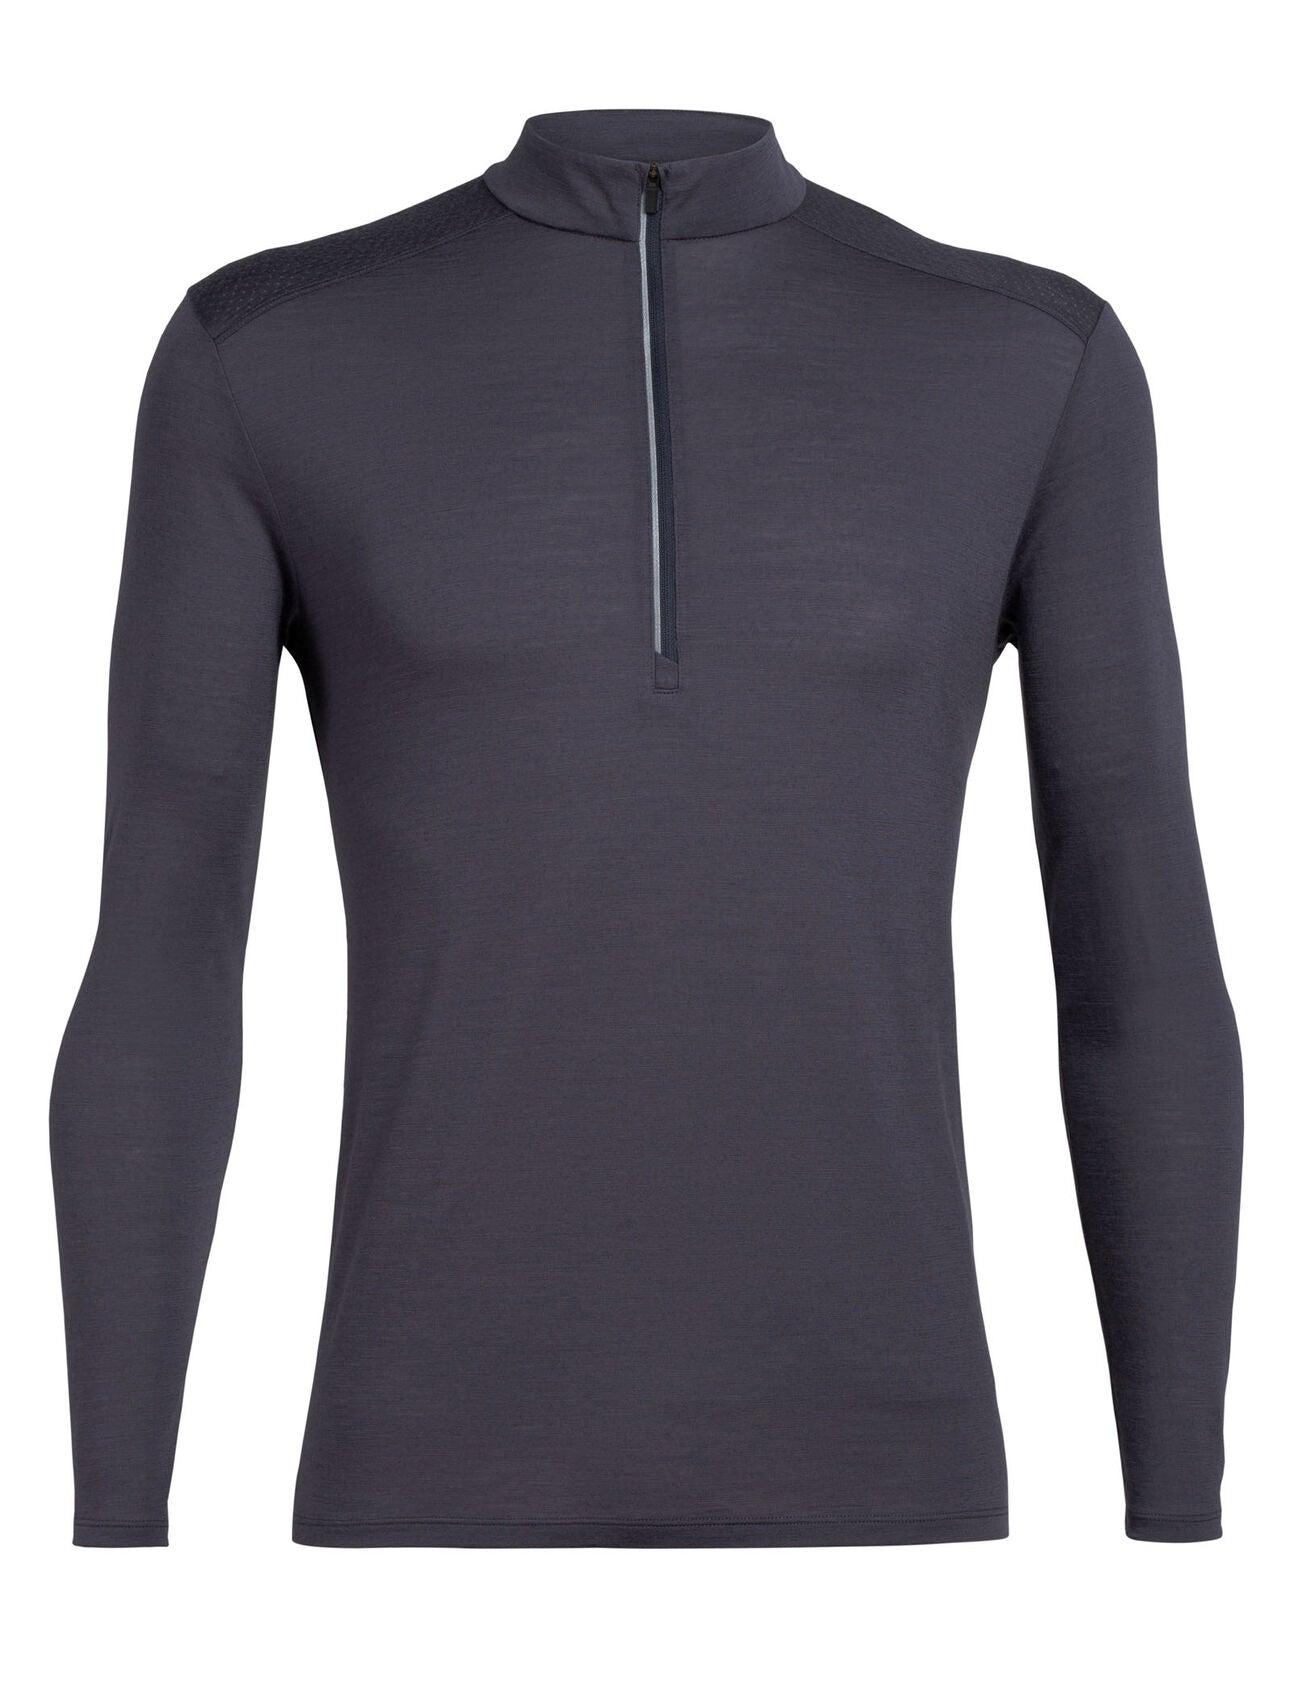 Icebreaker Amplify LS Half Zip (Men's) - Panther - Find Your Feet Australia Hobart Launceston Tasmania'